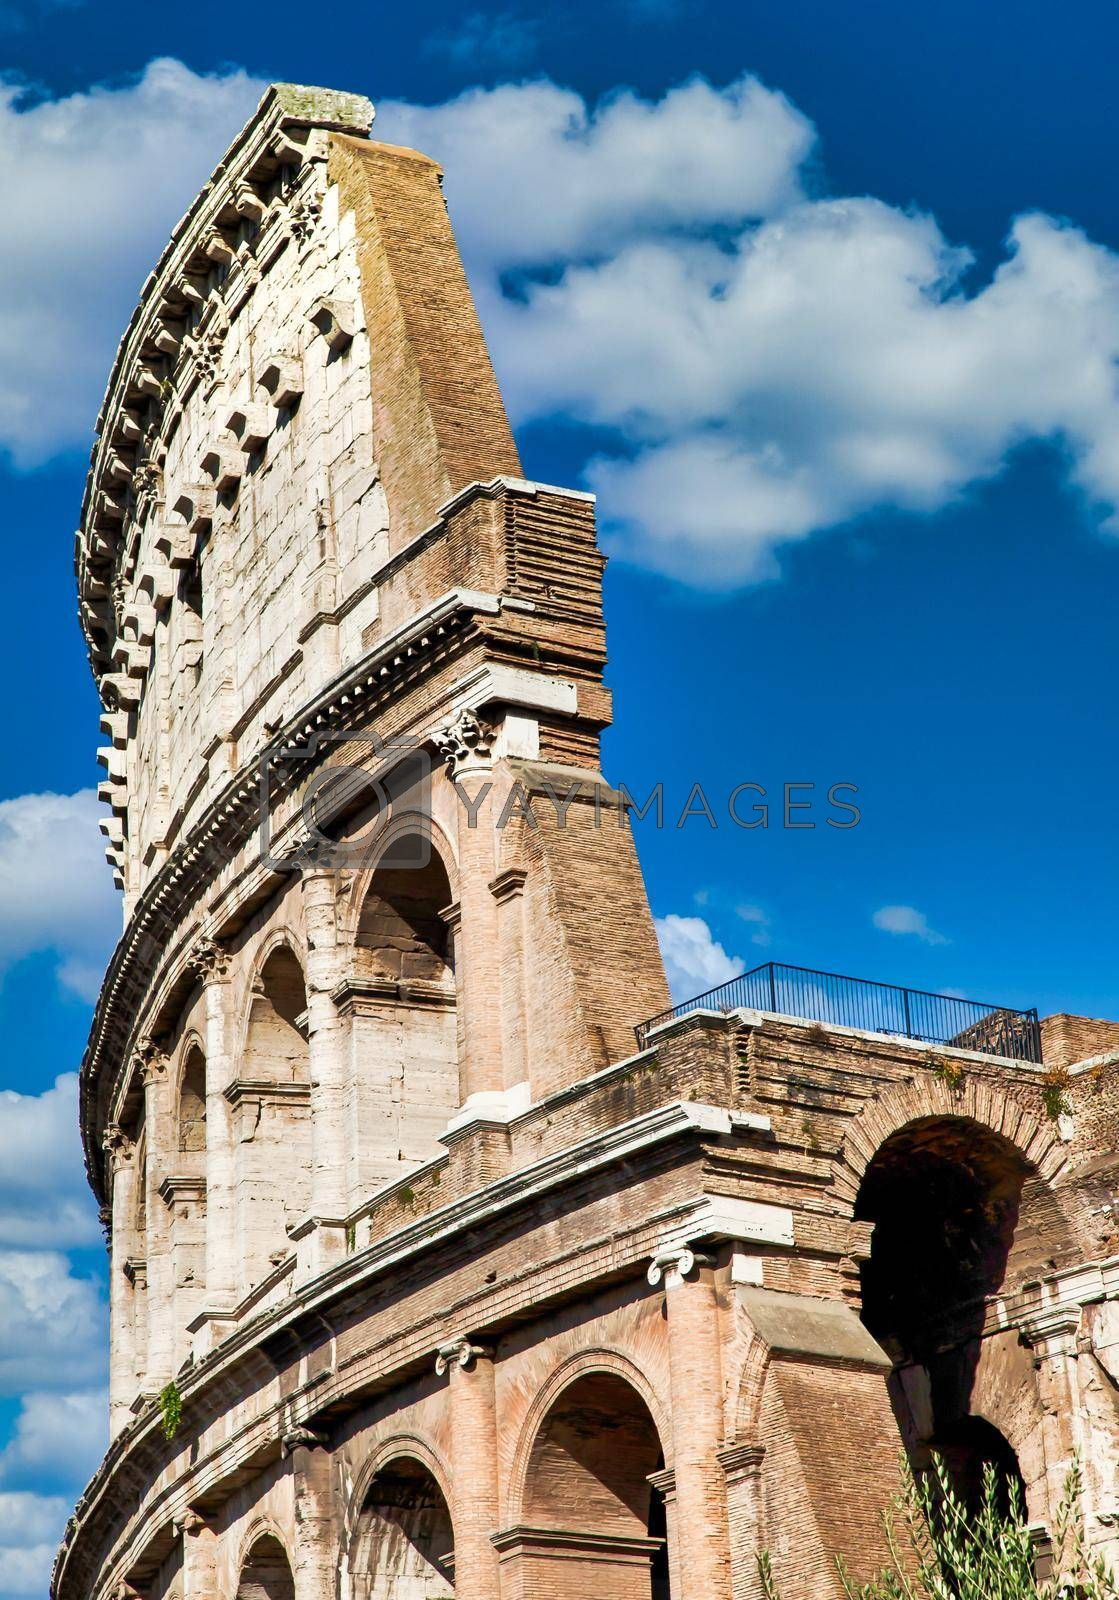 Rome, Italy. Arches archictecture of Colosseum (Colosseo) exterior with blue sky background and clouds.